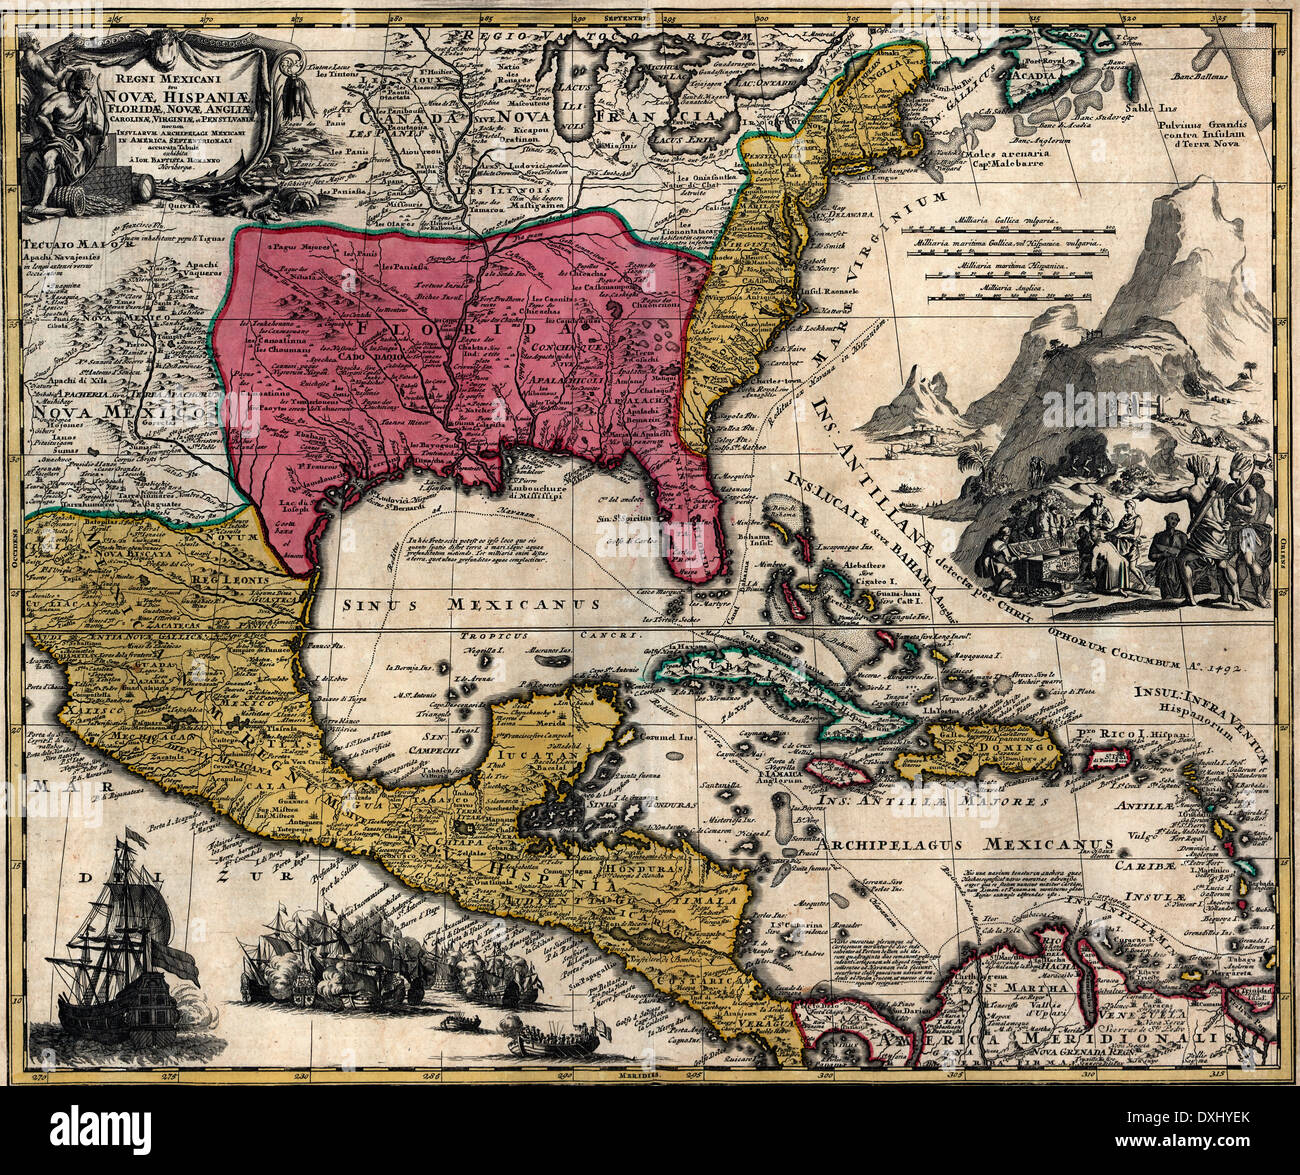 mexico new spain The northern frontier of new spain (mexico), the area of the current u s southwest, was a backwater of the spanish empire during the 1761 to 1812 period although spain devoted limited resources to the region, it had two main goals for the frontier: to restrict the influence of other european.